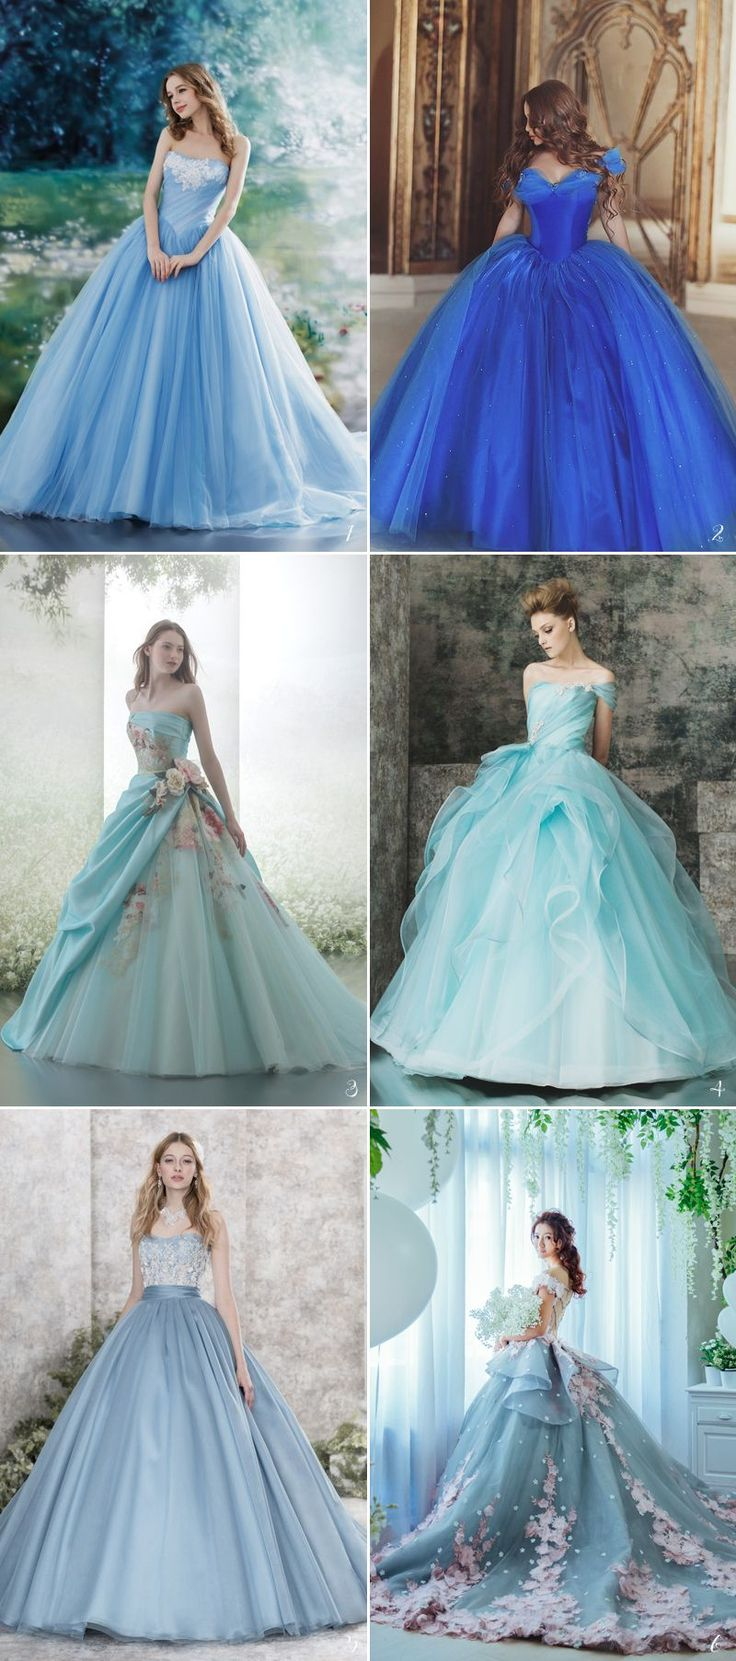 I just want to be a princess so I can have excuses to wear huge beautiful dresses!